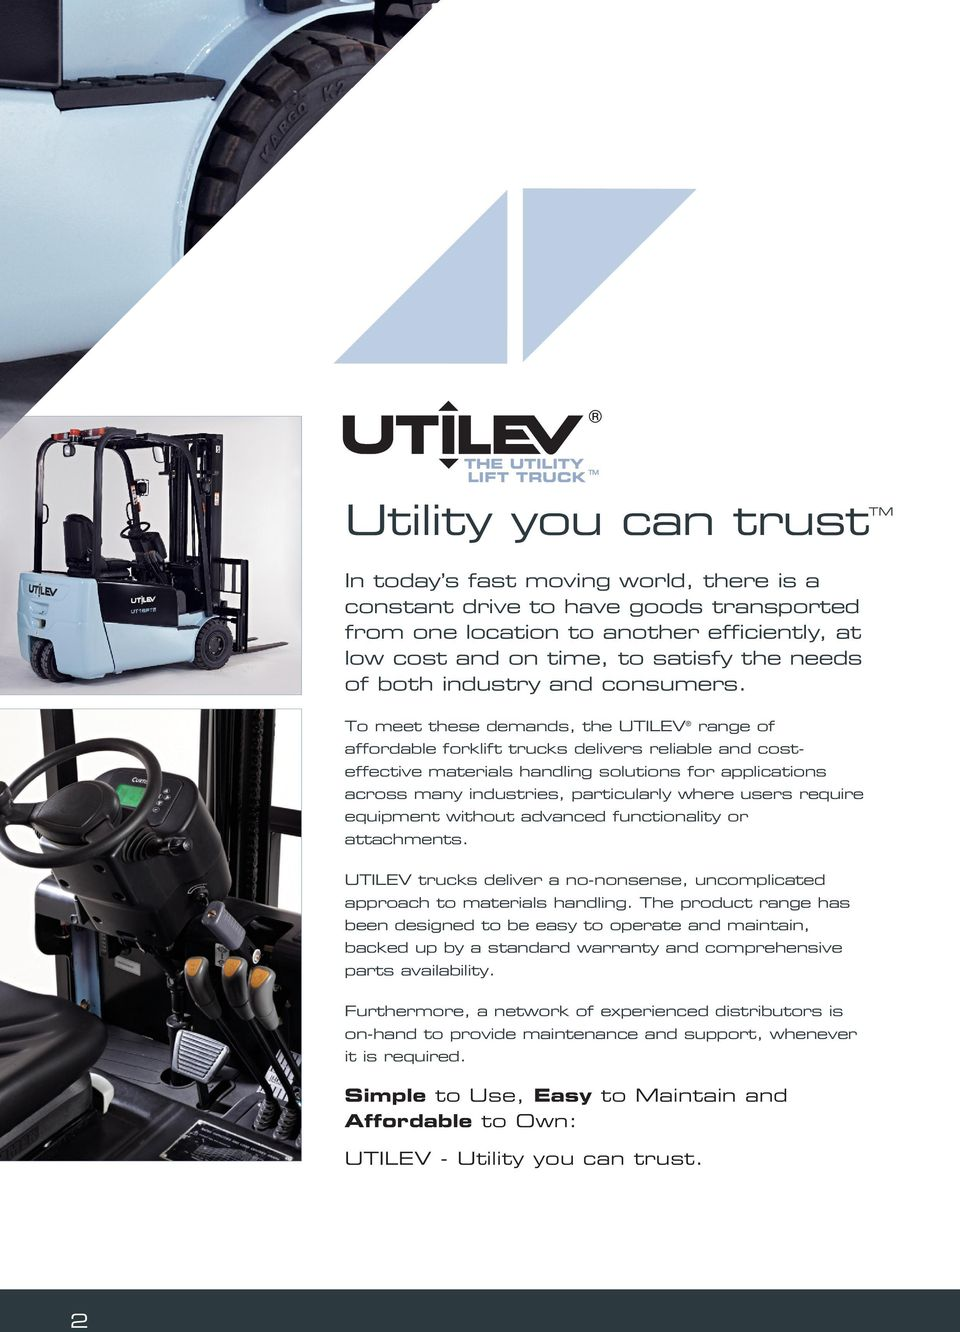 To meet these demands, the UTILEV range of affordable forklift trucks delivers reliable and costeffective materials handling solutions for applications across many industries, particularly where